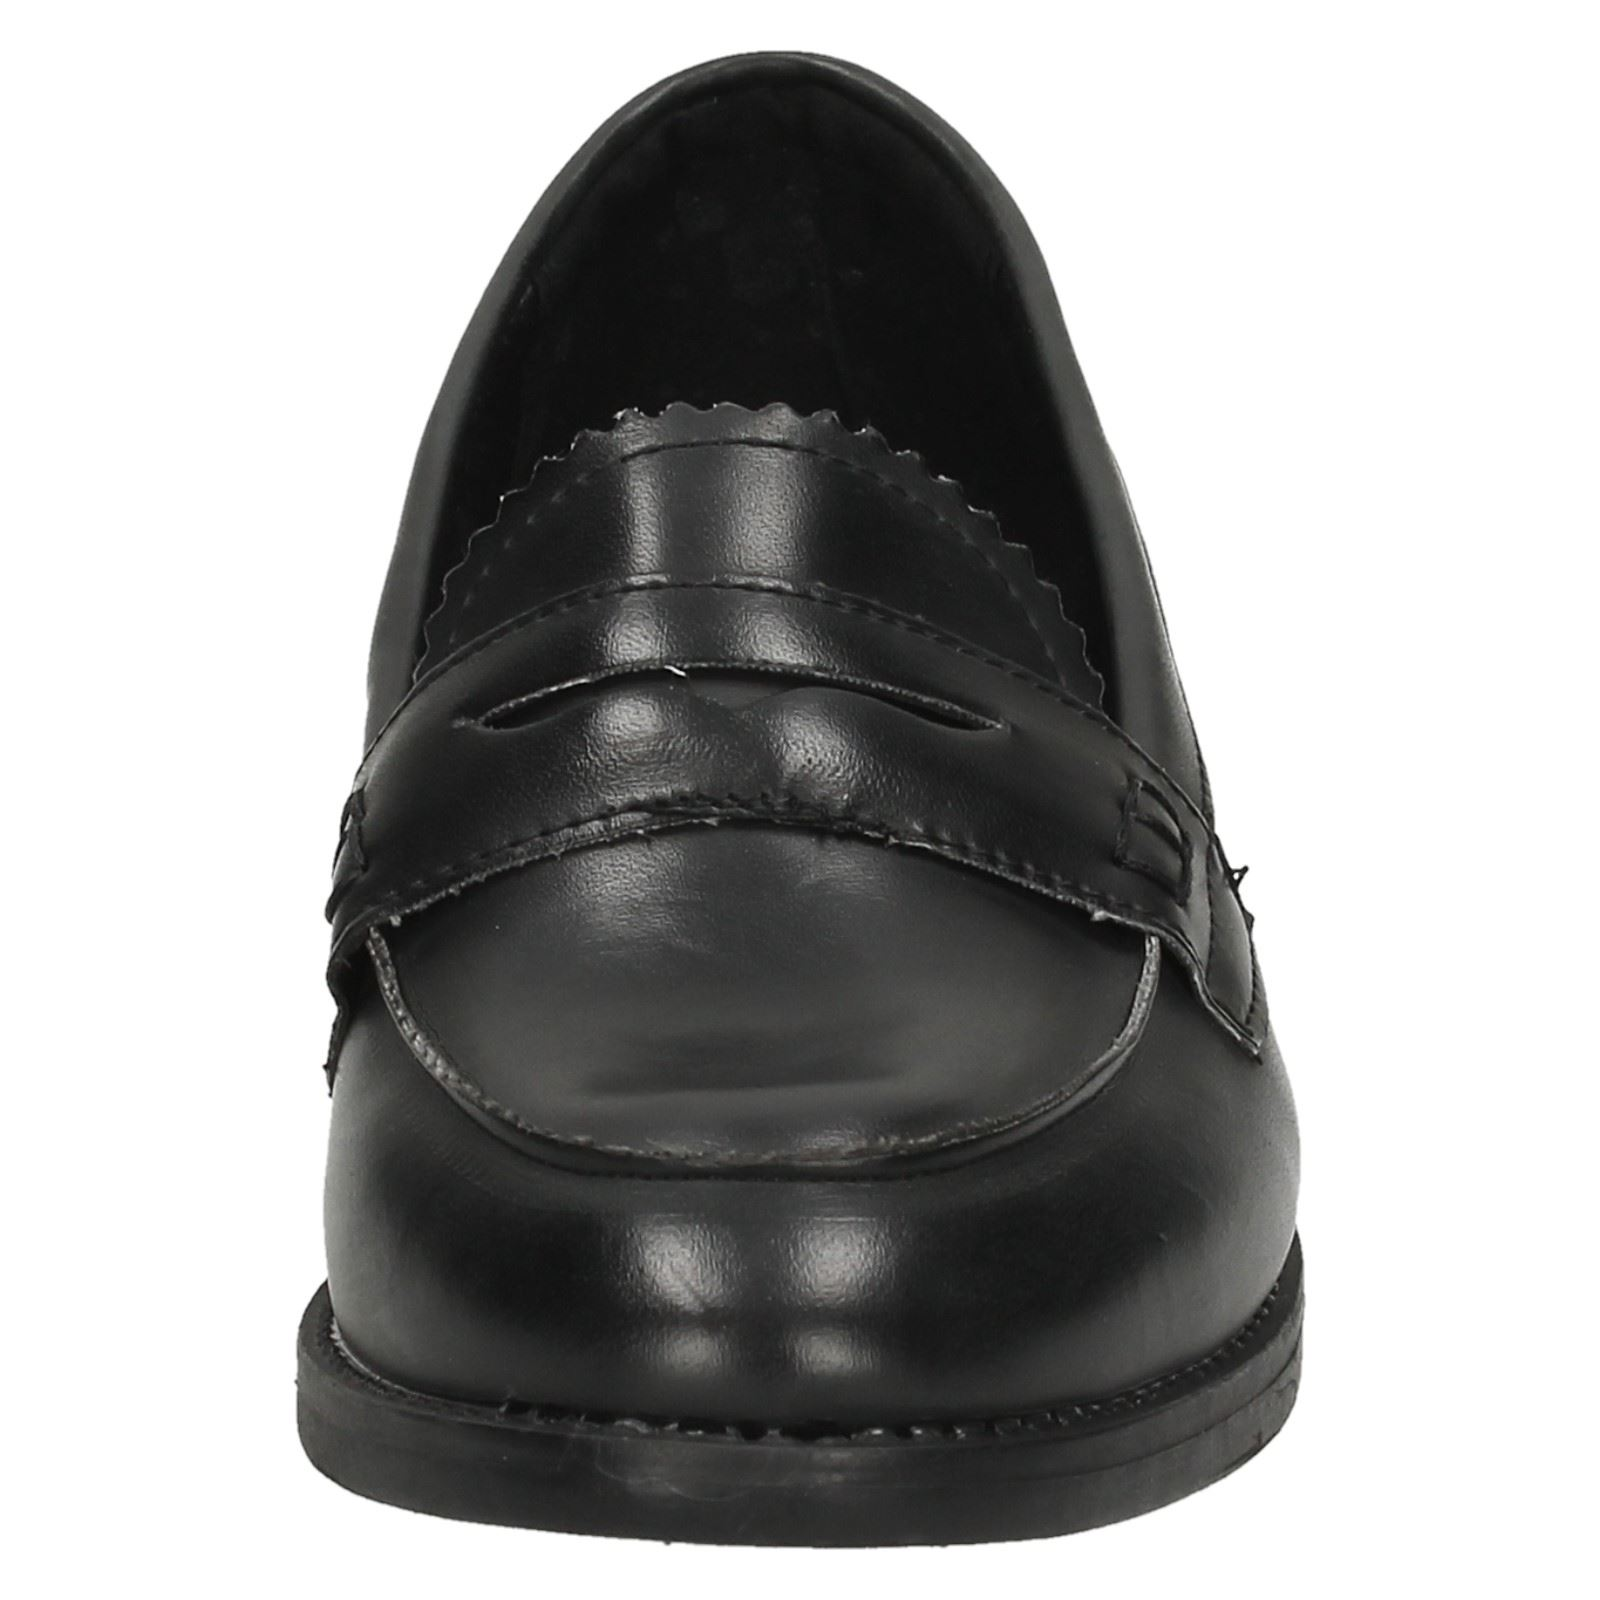 Ladies Spot On Loafer Style /'Shoes/'